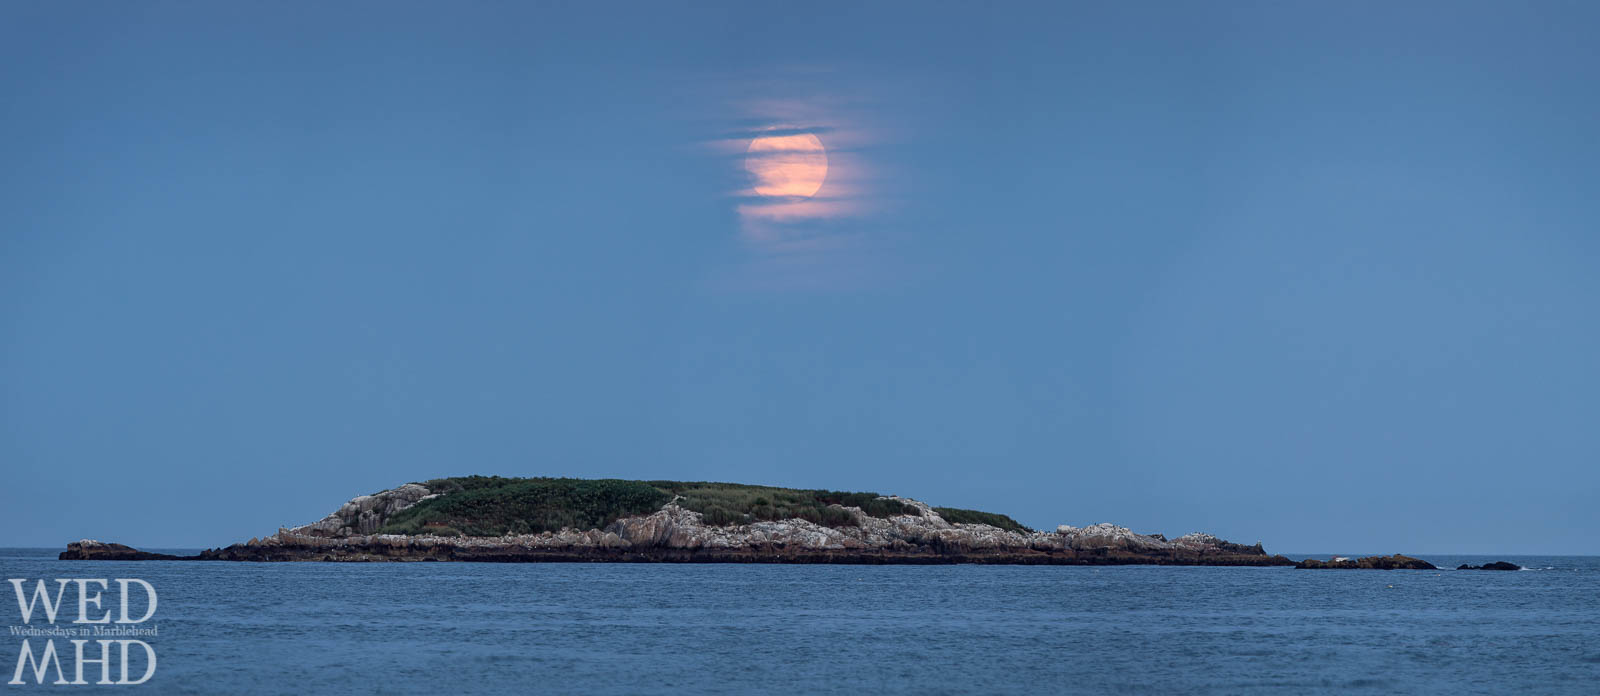 The full moon rises over Ram Island on a late Summer evening